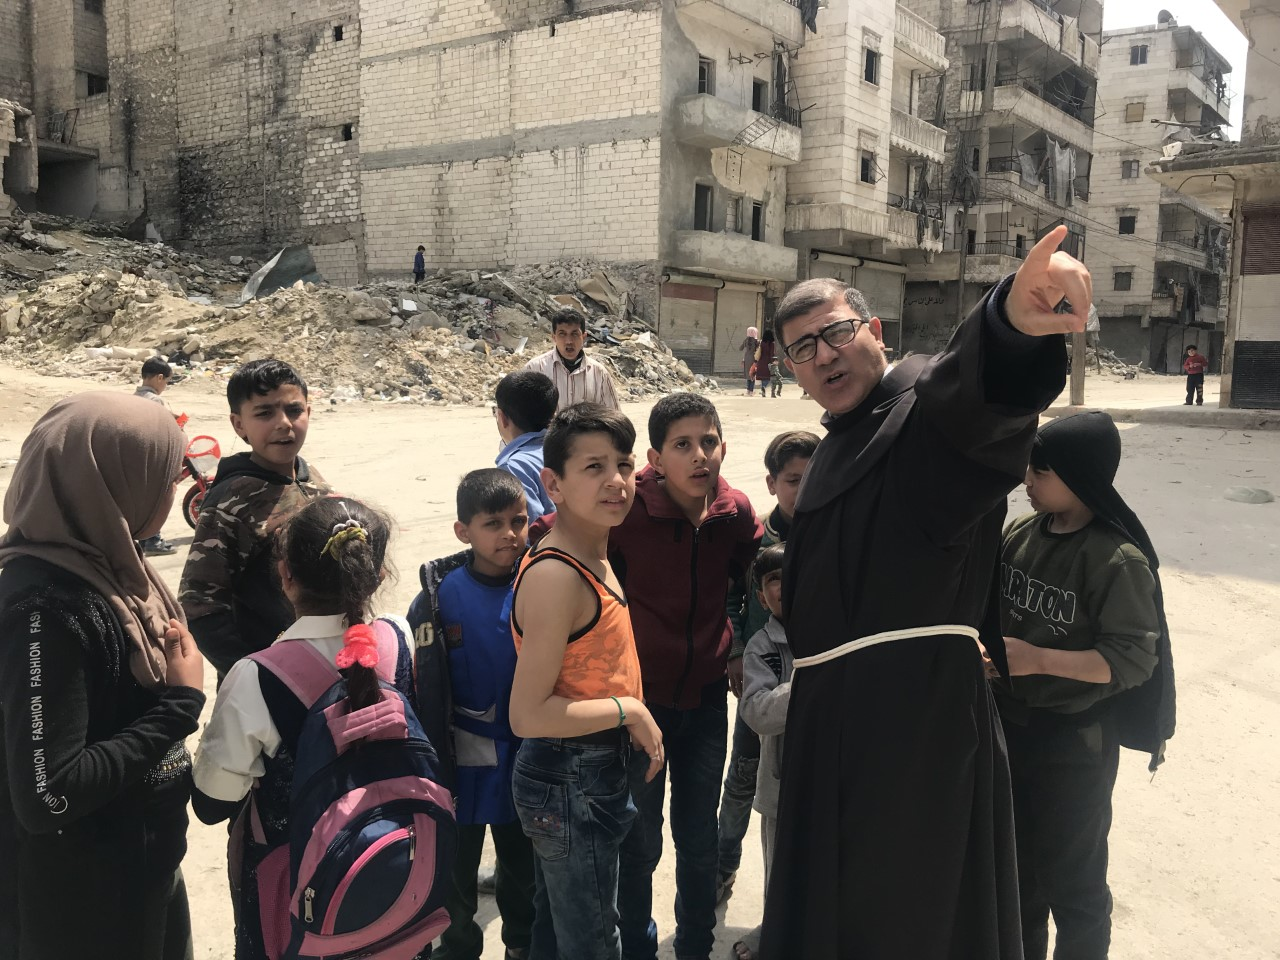 Syria: The two Franciscan Friars giving hope to Christians living under Sharia in Idlib province